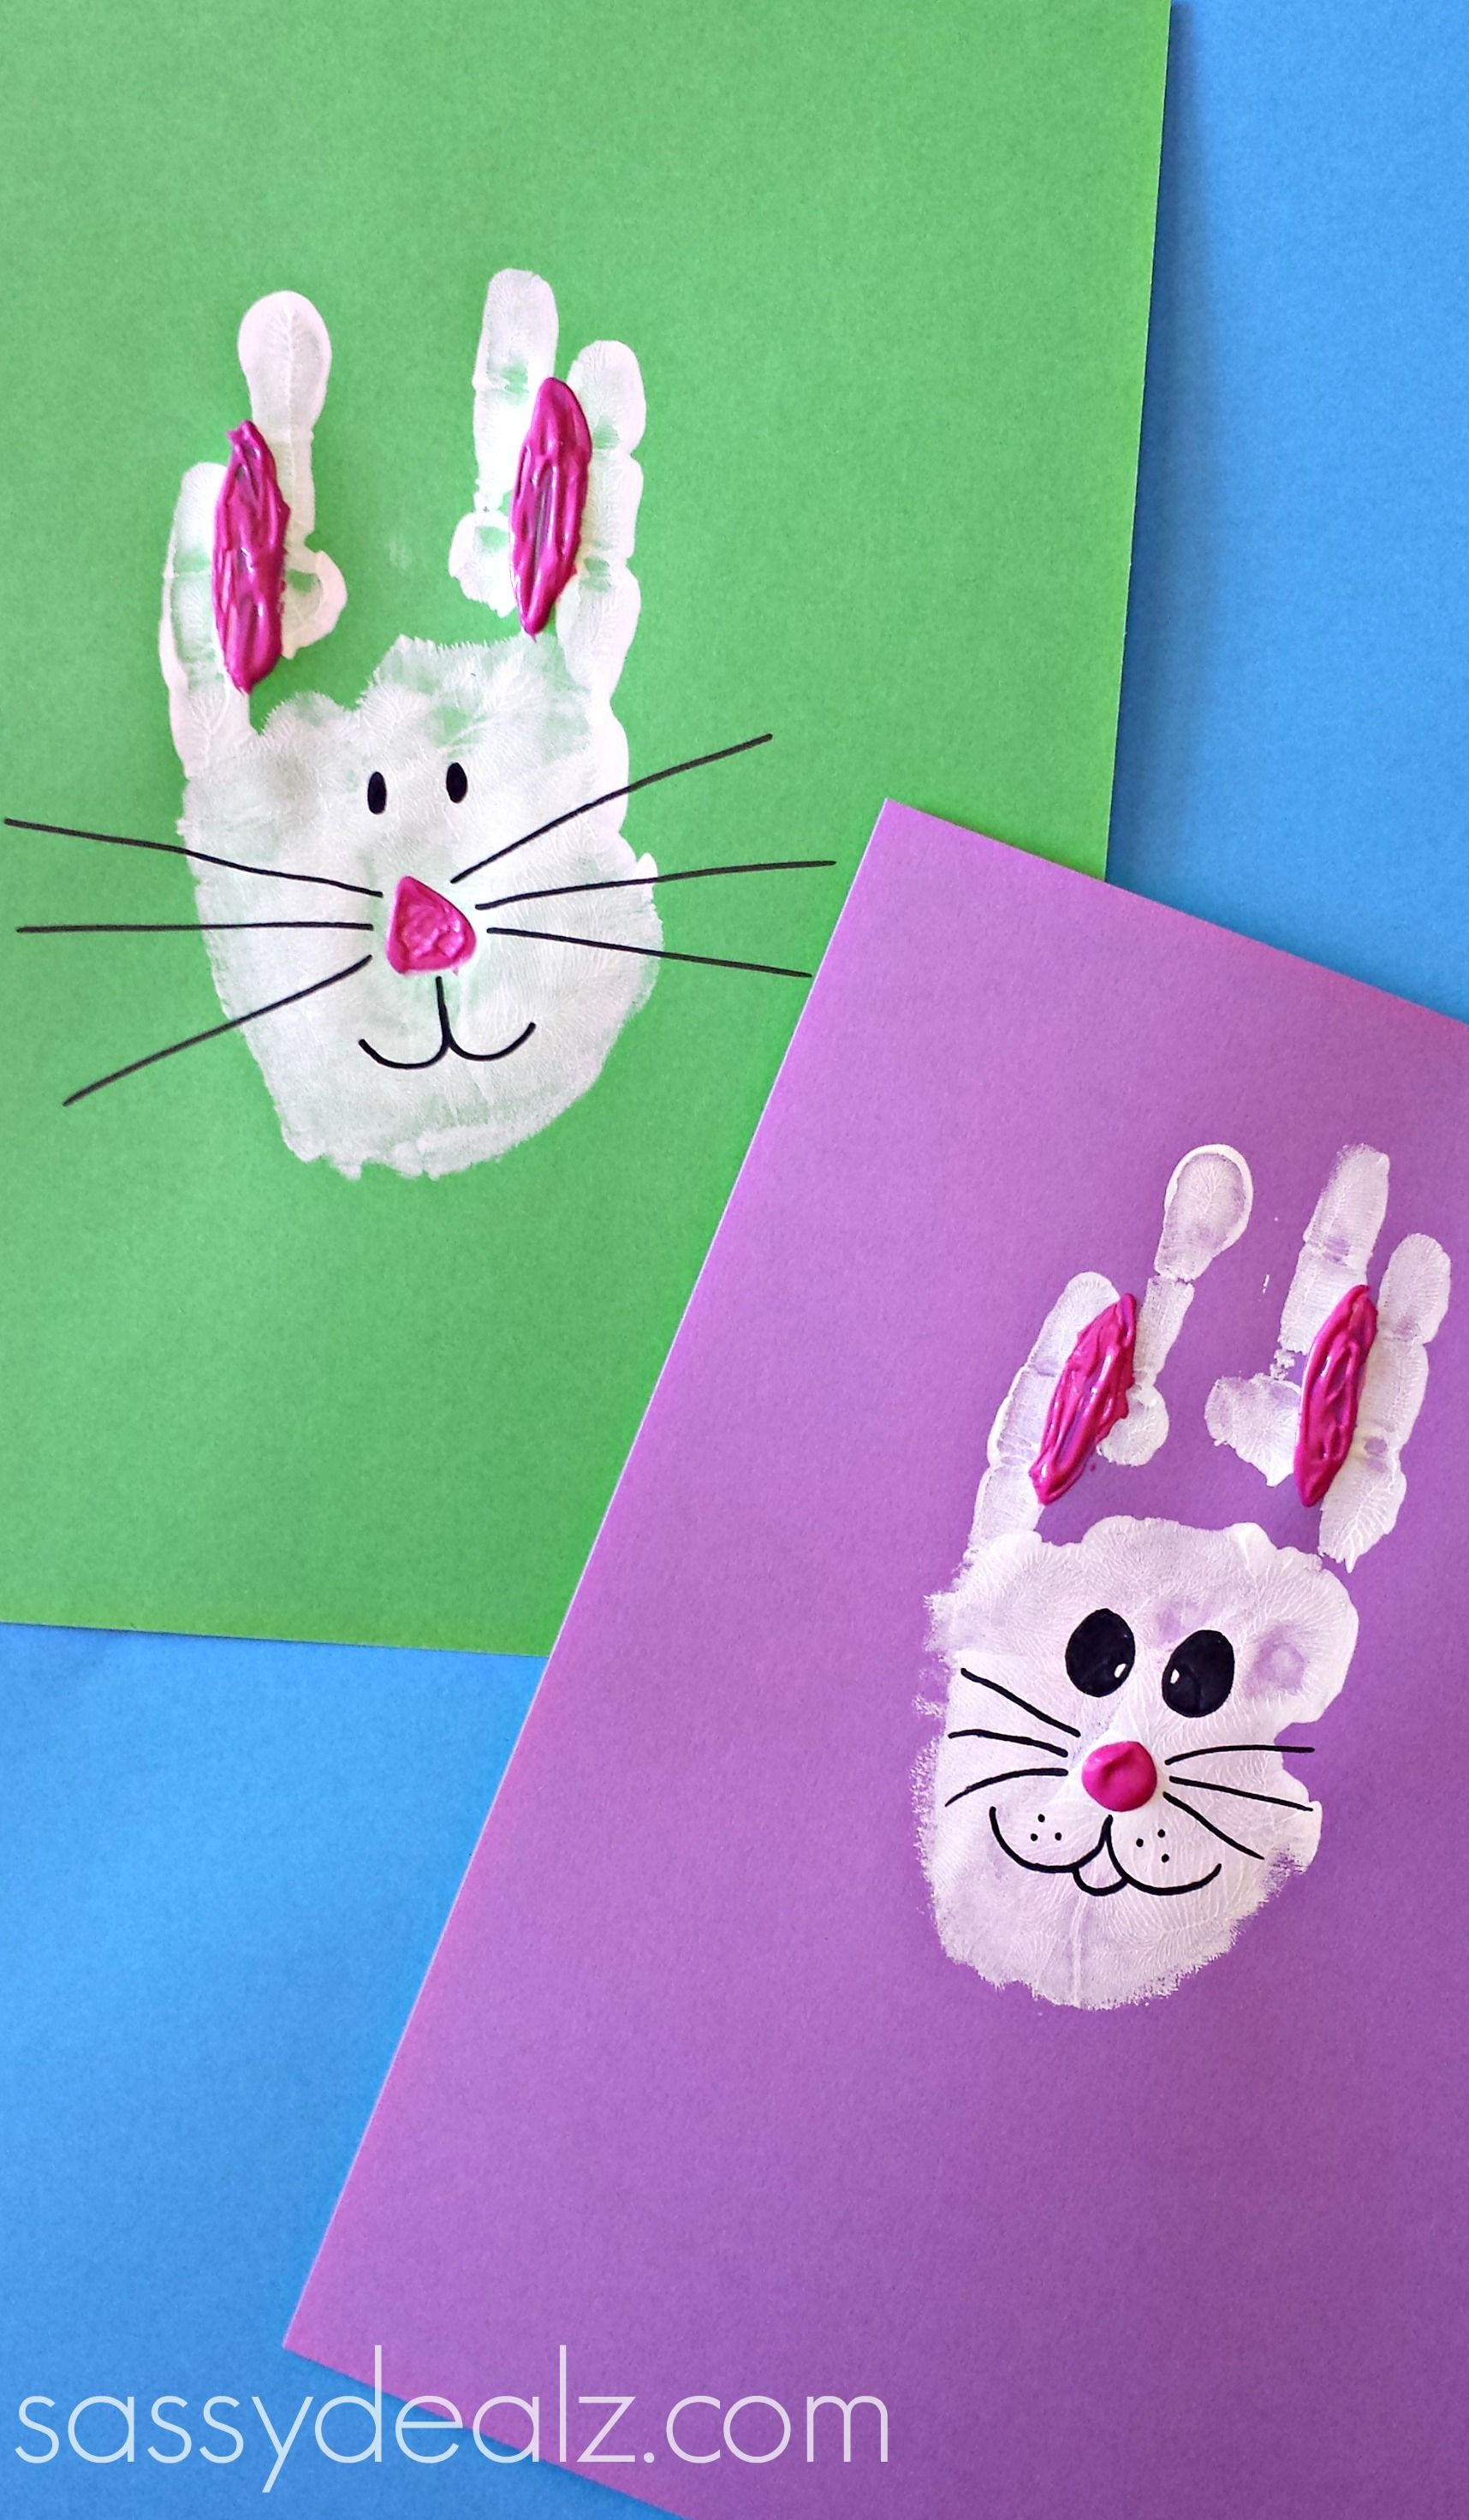 Easter Bunny Rabbit Handprint Craft For Kids Art Project Idea Preschool Easy